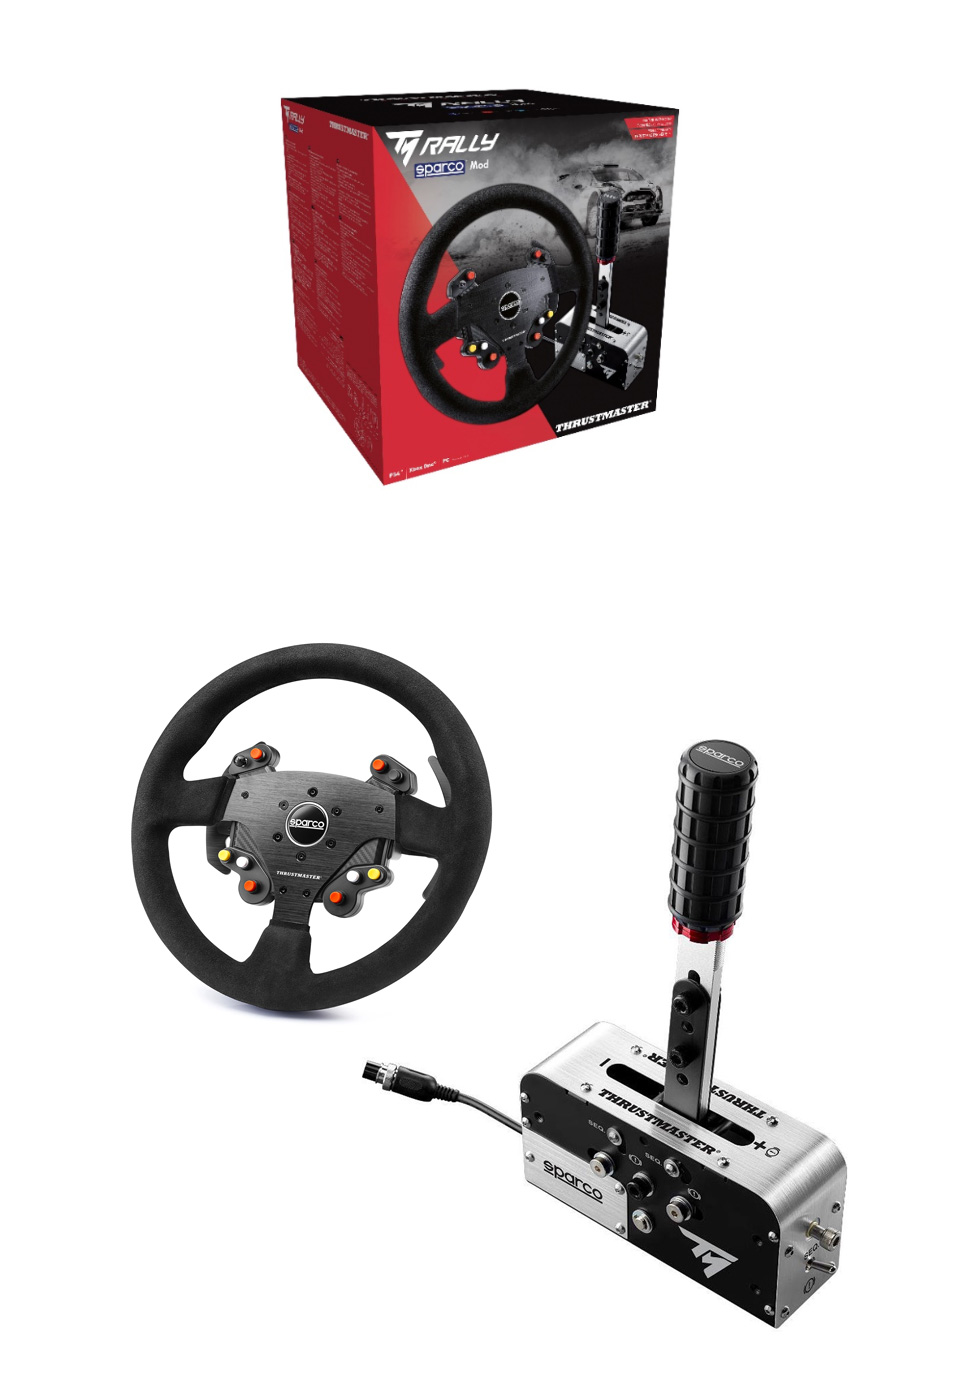 Thrustmaster Rally Race Gear Sparco MOD product